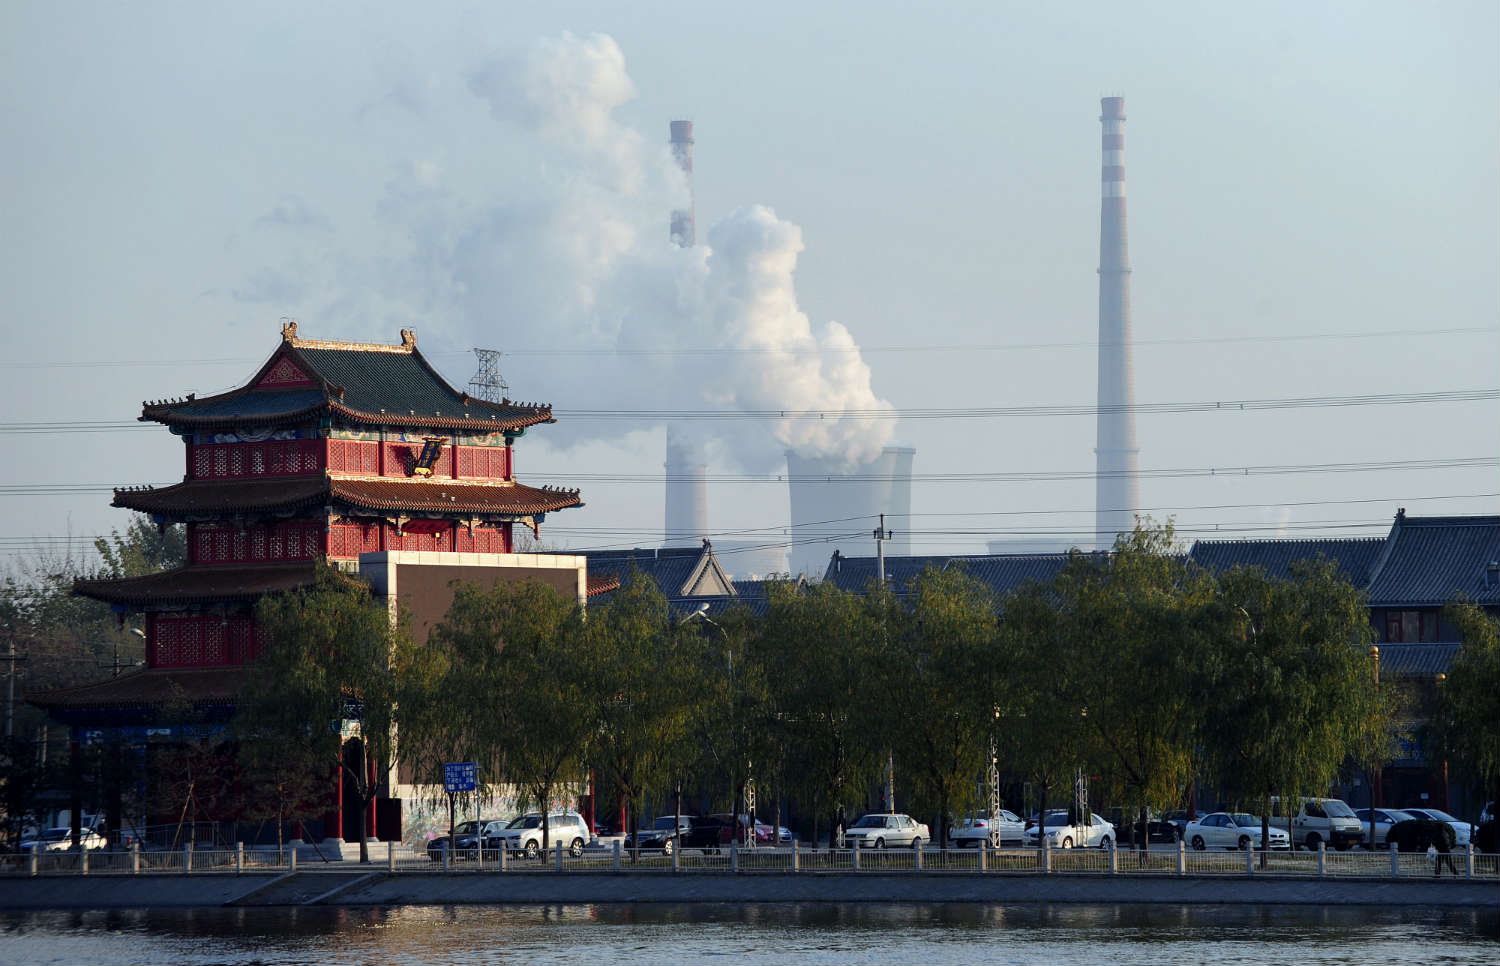 A coal plant looms behind a traditional house in Tianjin, China